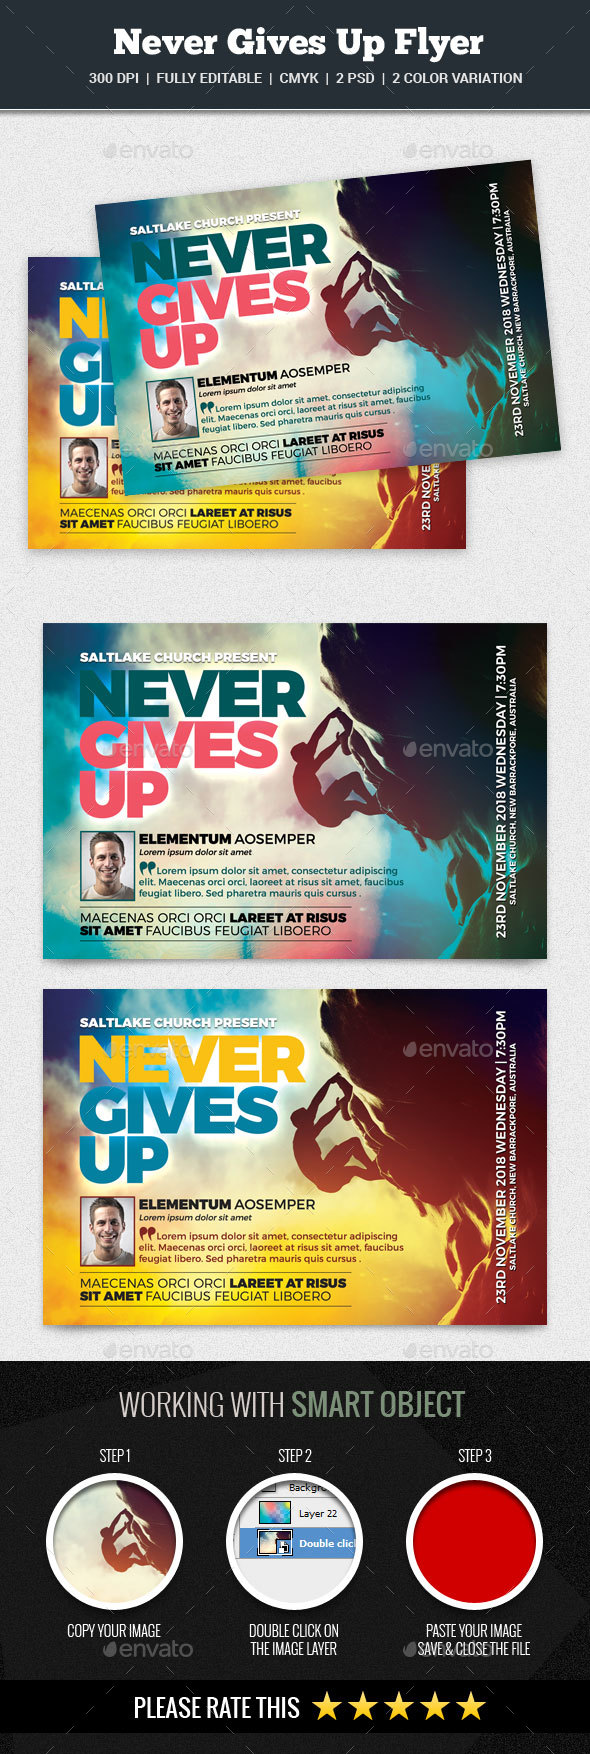 Never Gives Up Flyer - Church Flyers